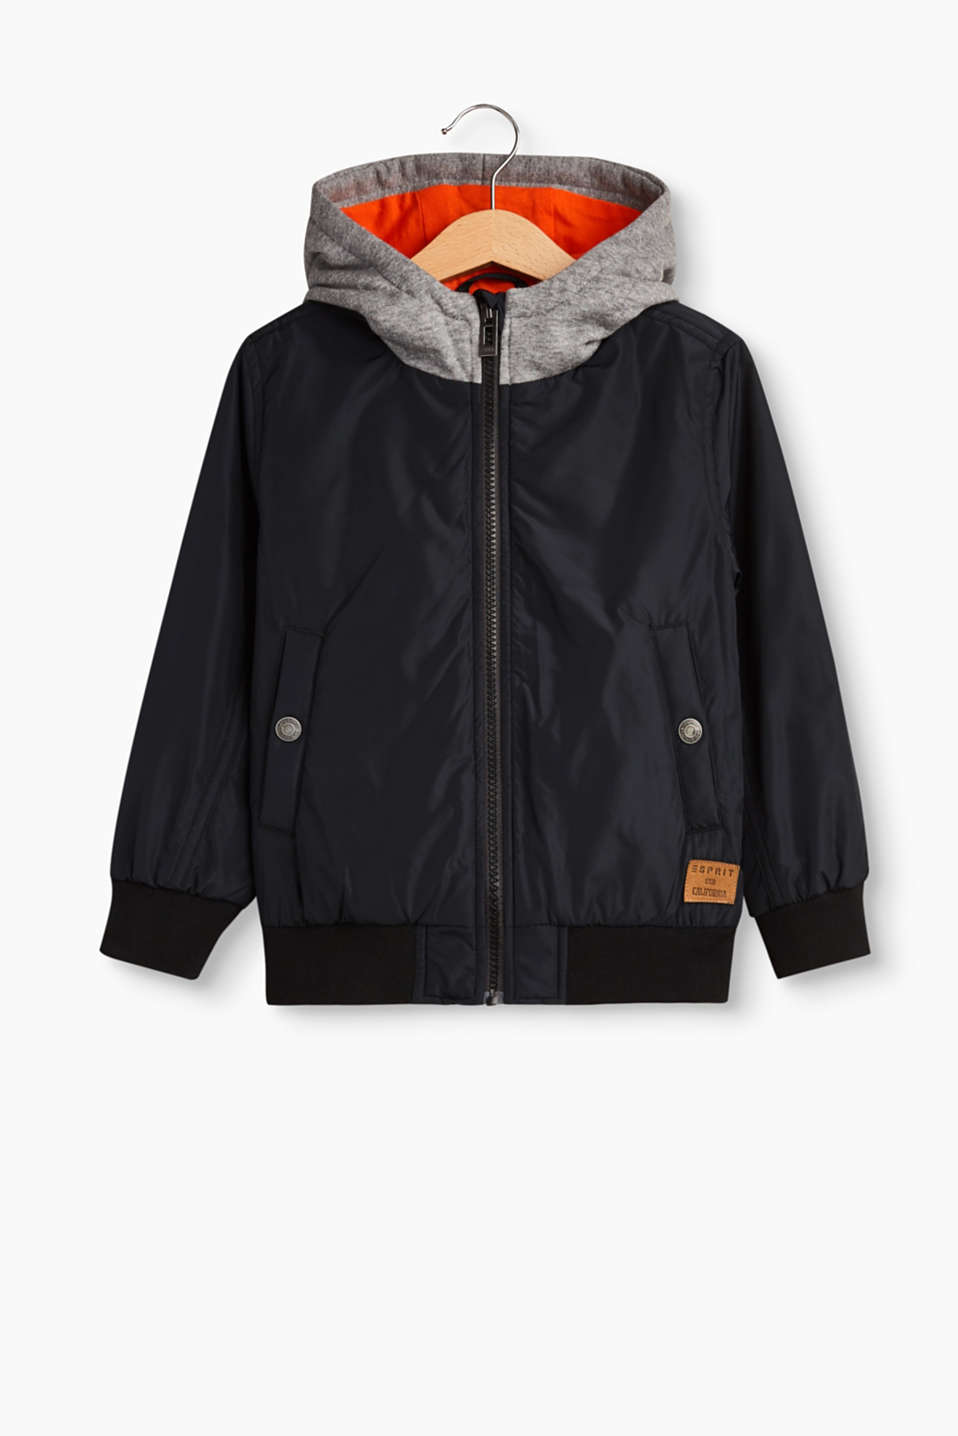 Sporty and weatherproof, this cool jacket comes with a contrasting hood that instantly catches the eye!